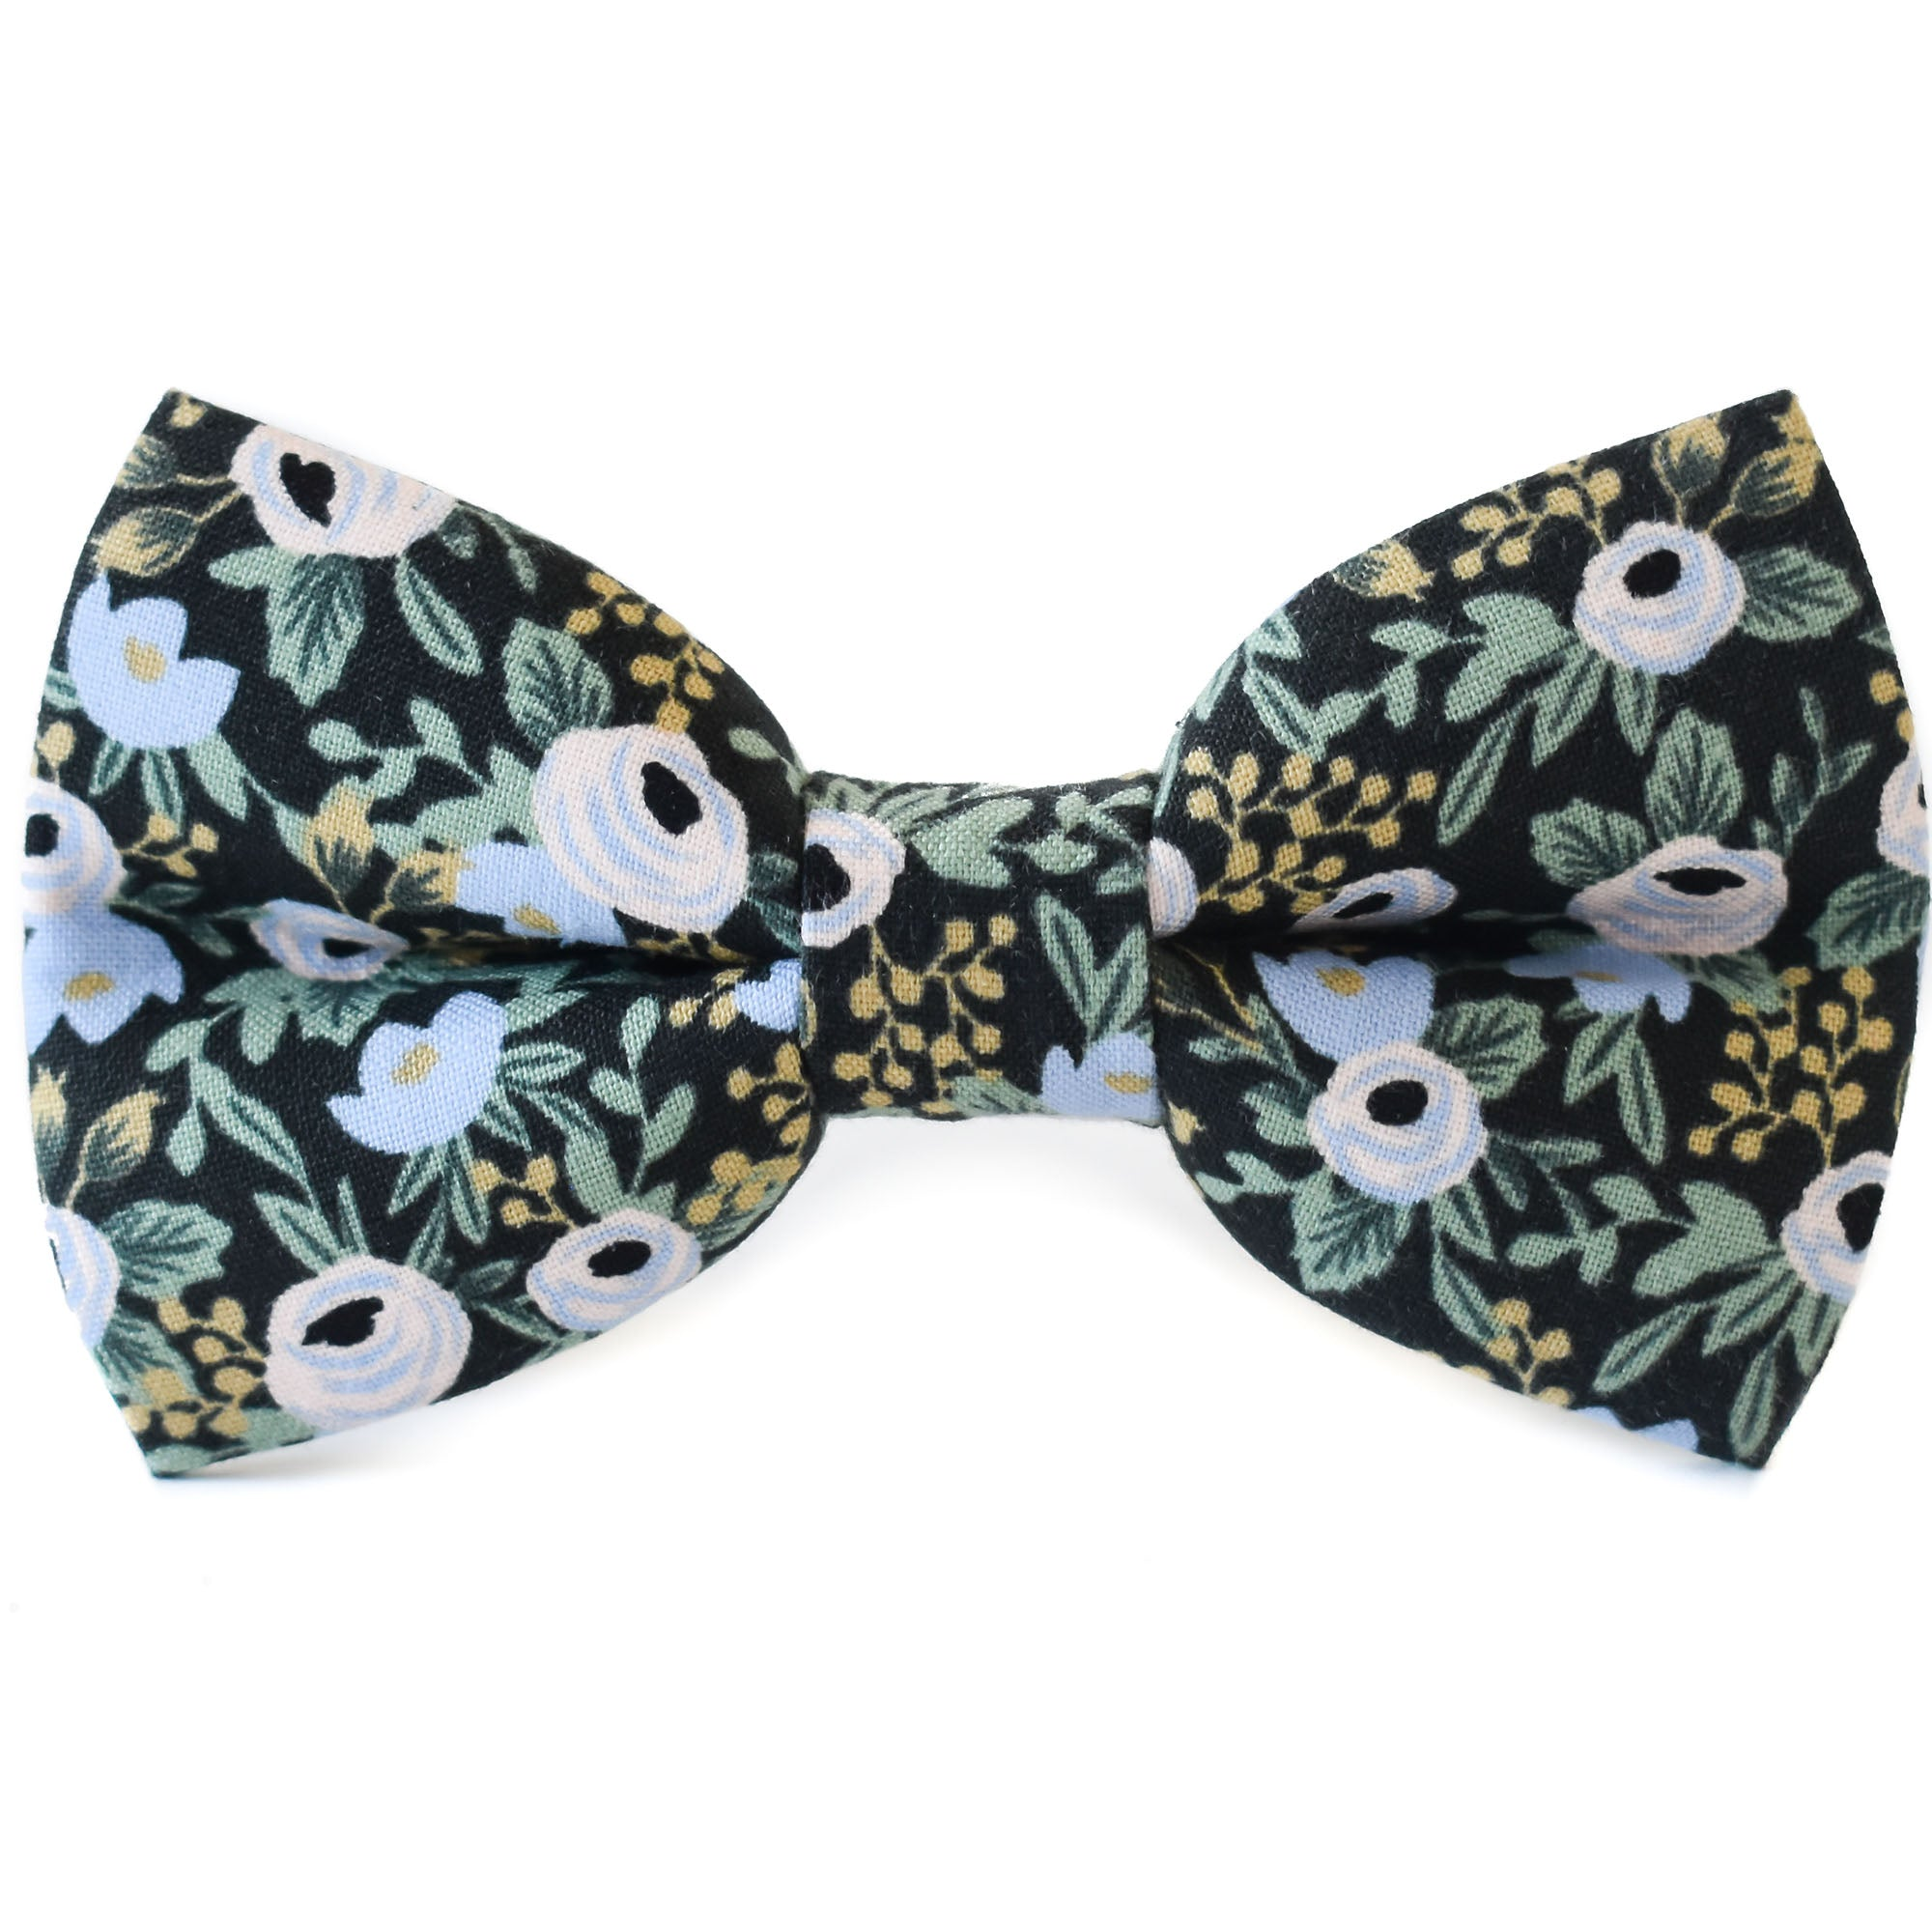 London Floral Dog Bow Tie